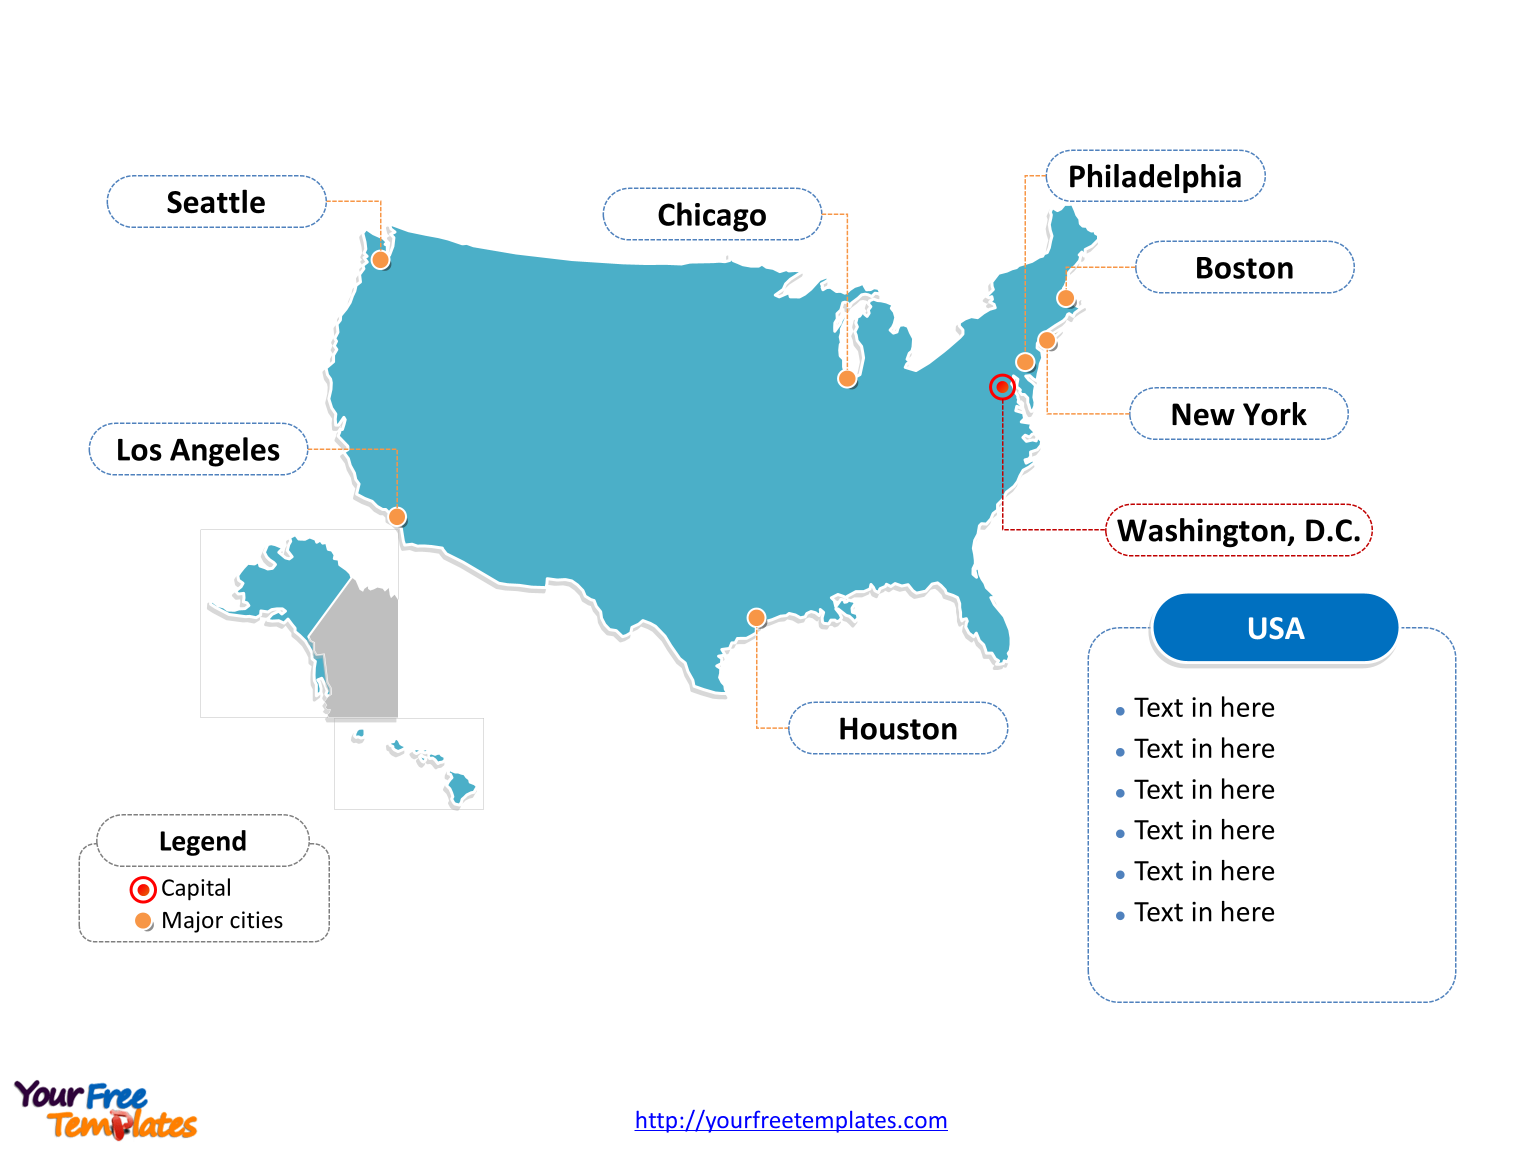 Free Usa Powerpoint Map Free Powerpoint Templates - Us-map-images-free